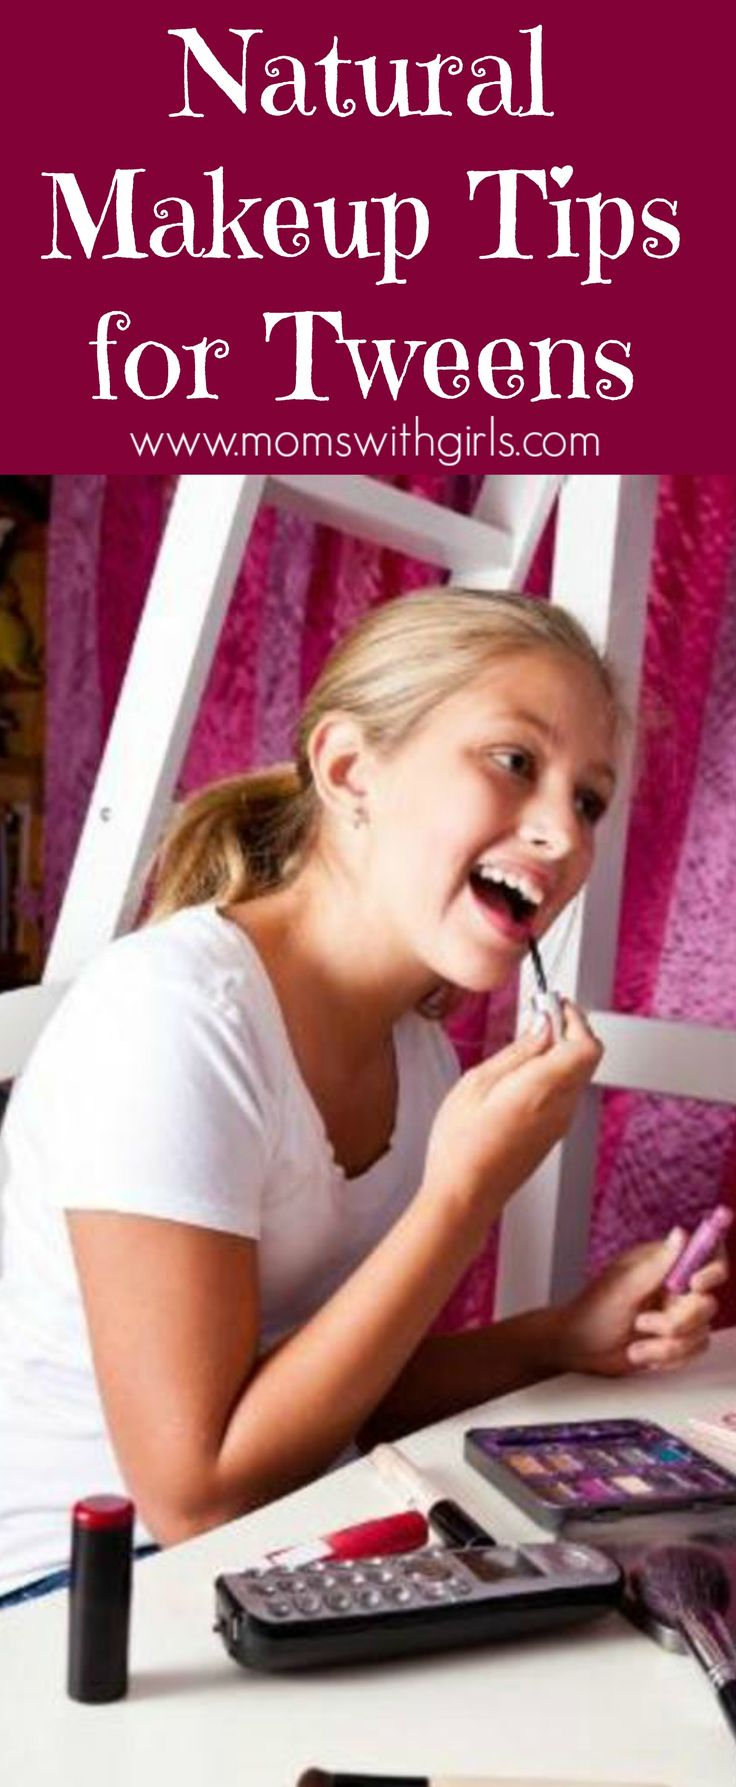 Here are some very natural makeup tips for tweens to pass along to your daughters. Written by a tween girl so this is the real deal!